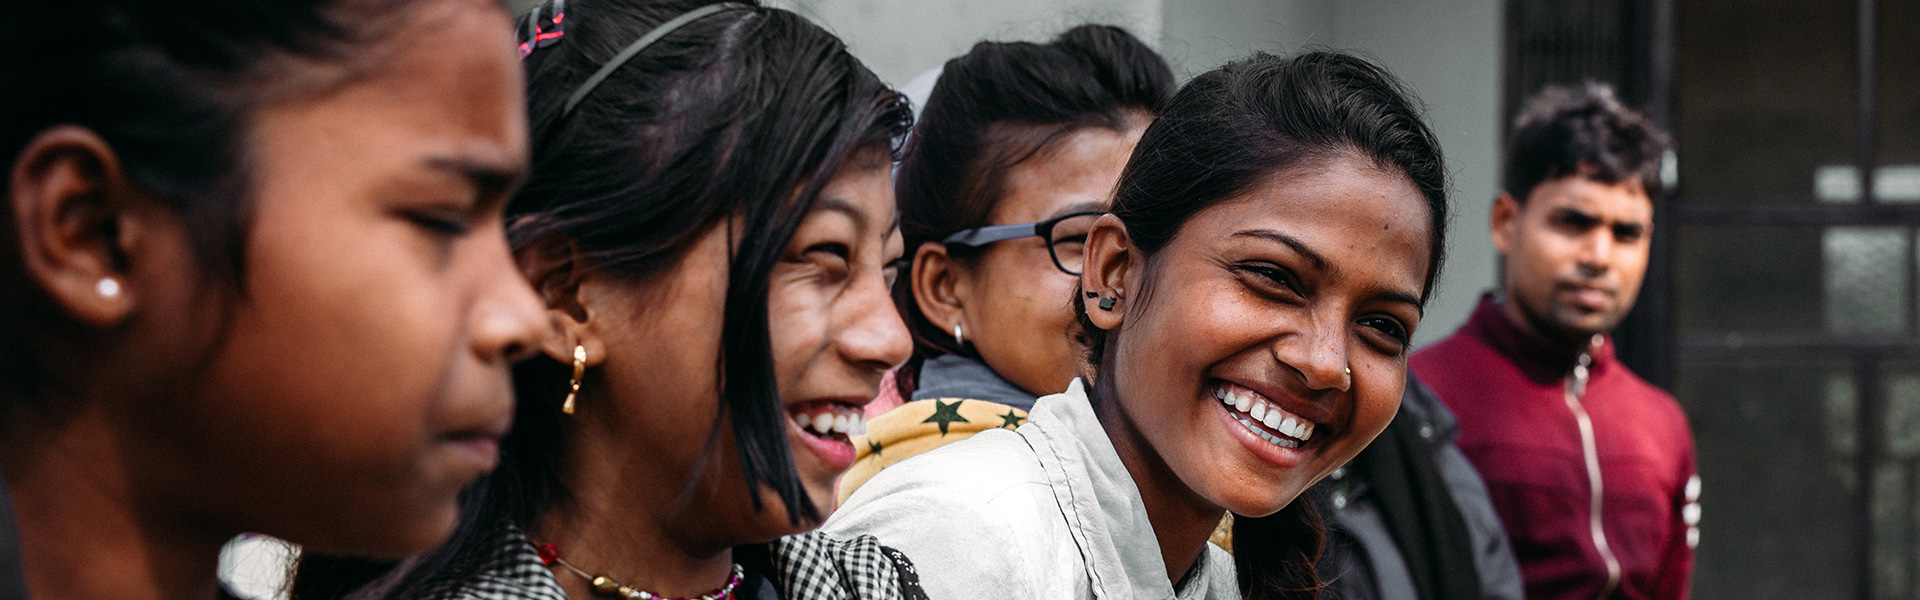 nepal-samvad-youth-group